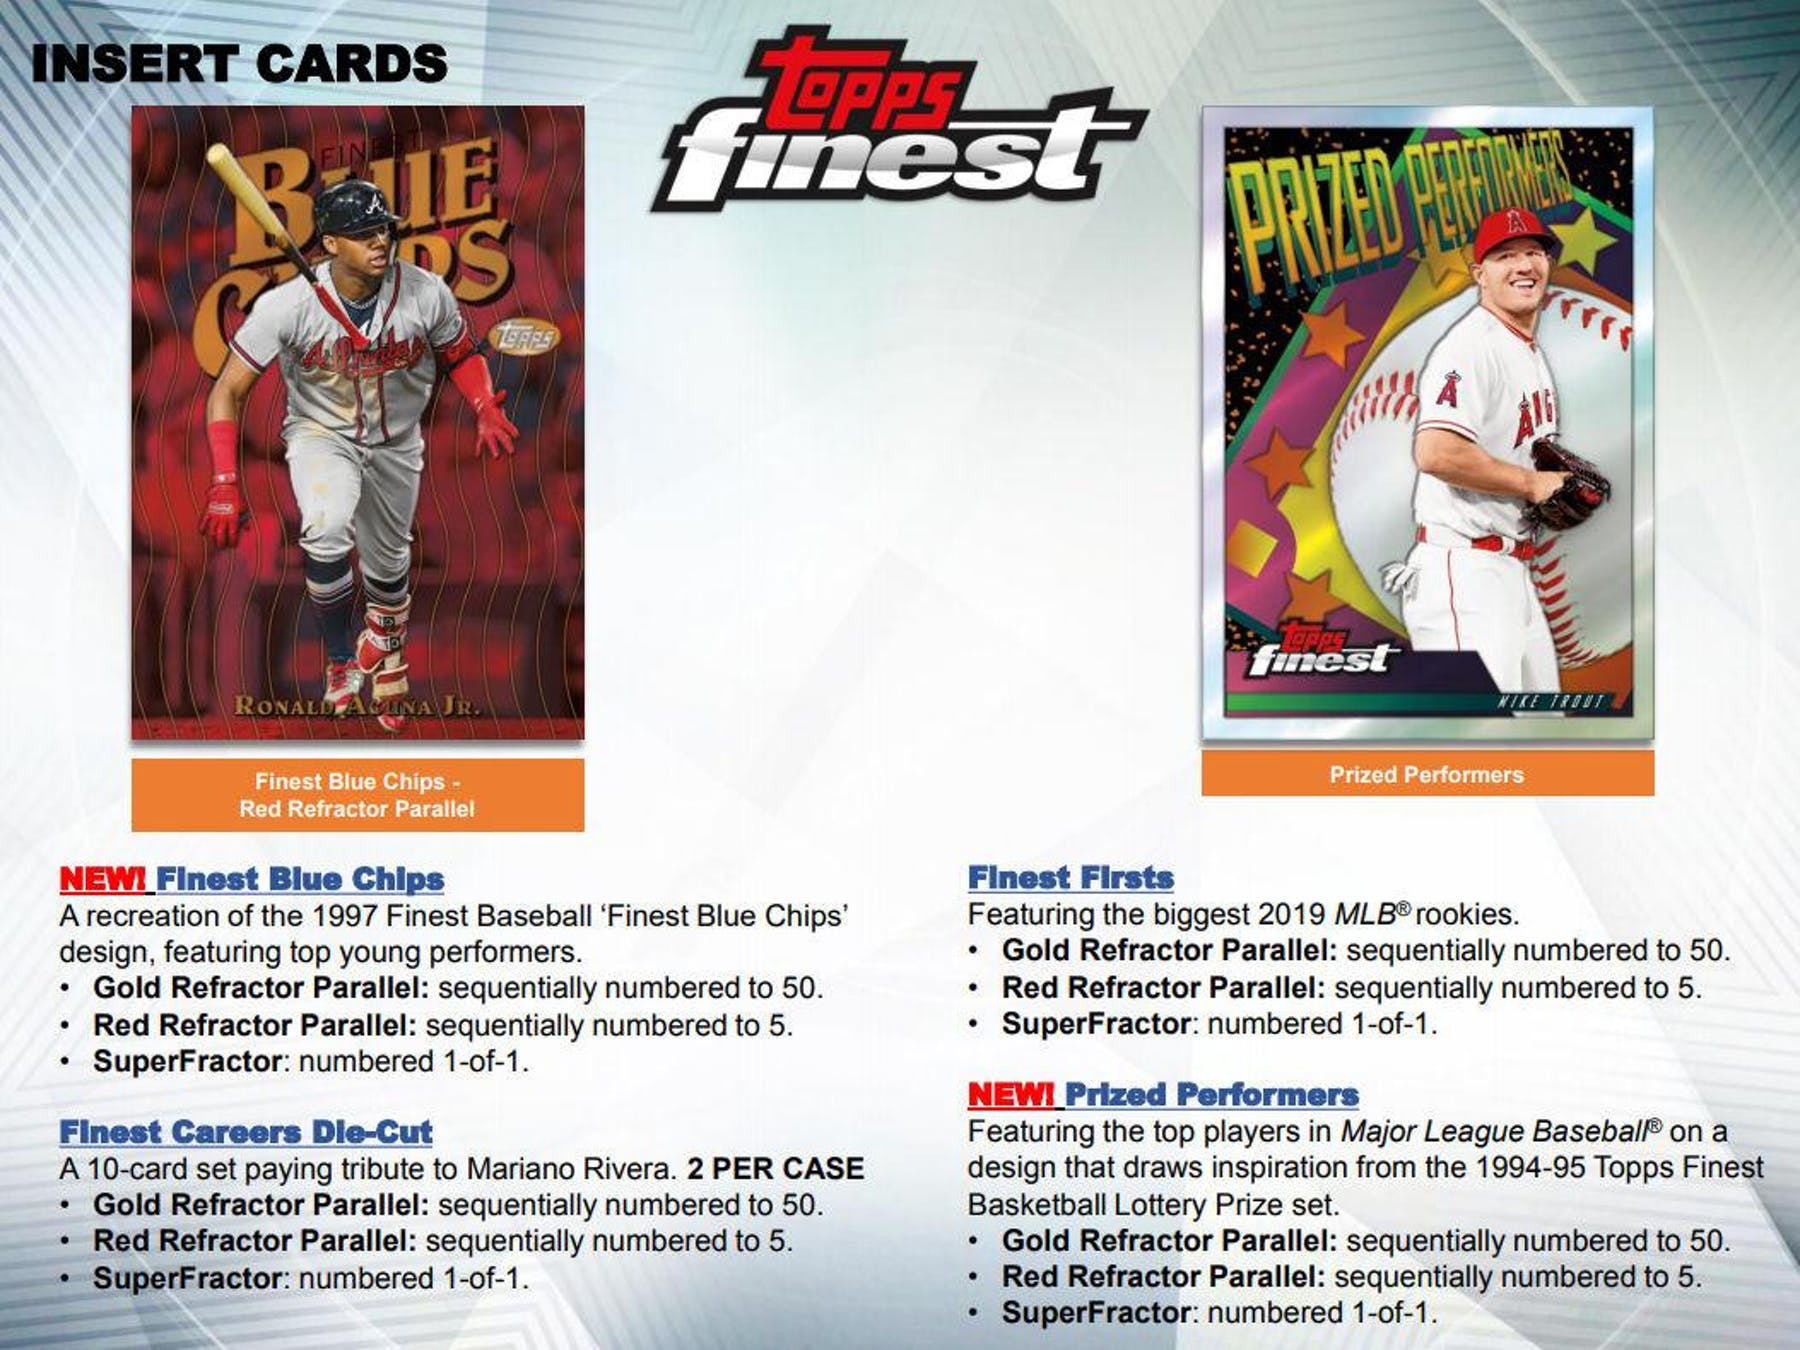 2019 Topps Finest Baseball Pack Wars Low Card Wins The